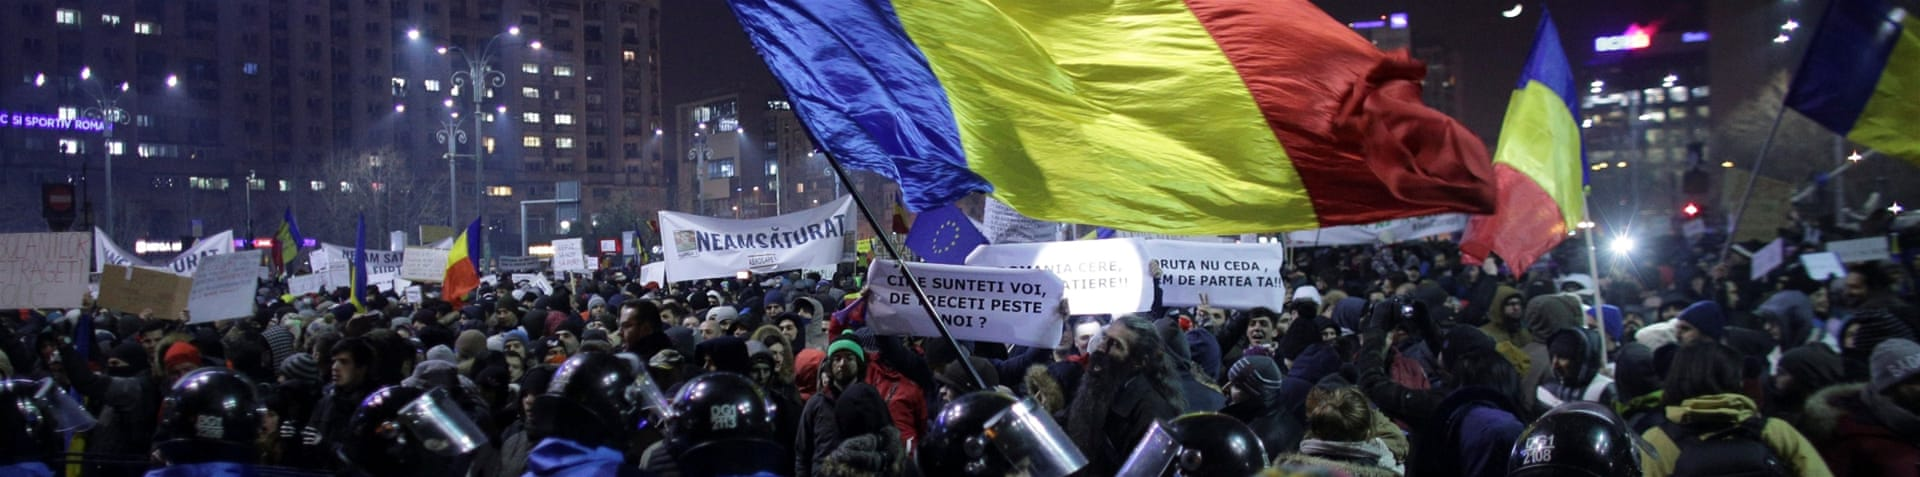 Tens of thousands of protesters have marched in recent days across Romania [Stoyan Nenov/Reuters]